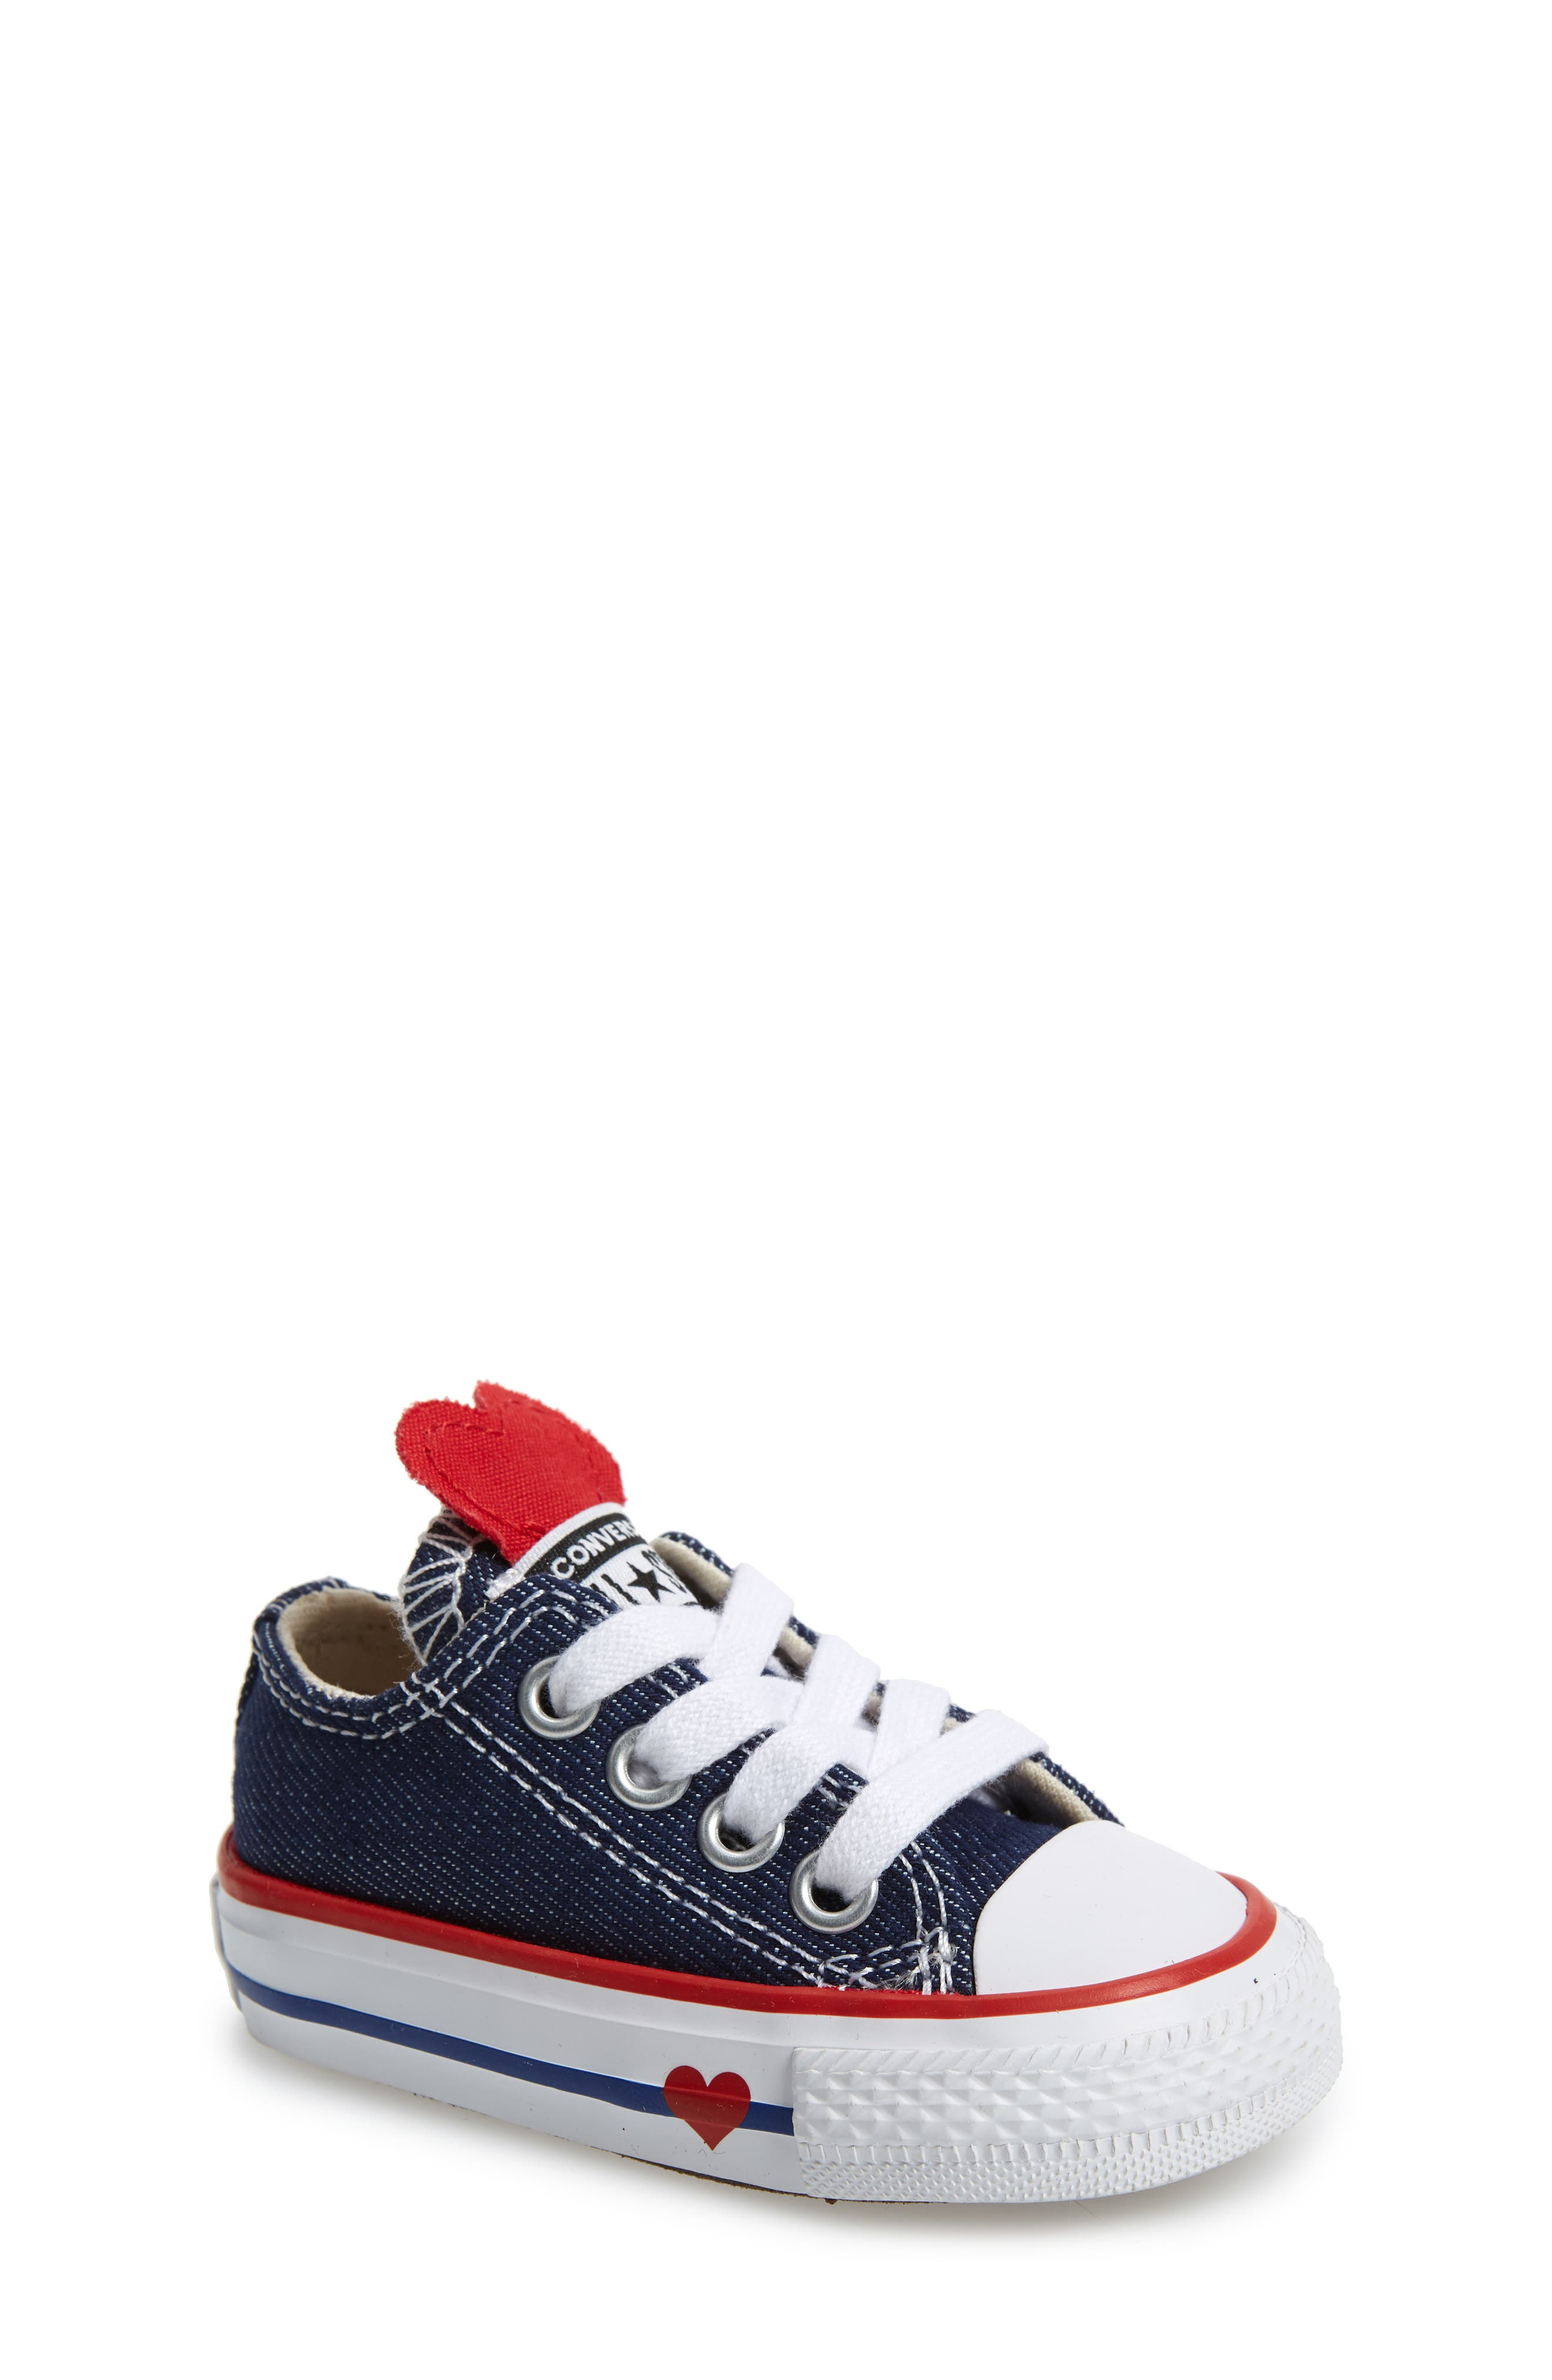 CONVERSE, Chuck Taylor<sup>®</sup> All Star<sup>®</sup> Ox Low Top Sneaker, Main thumbnail 1, color, 410